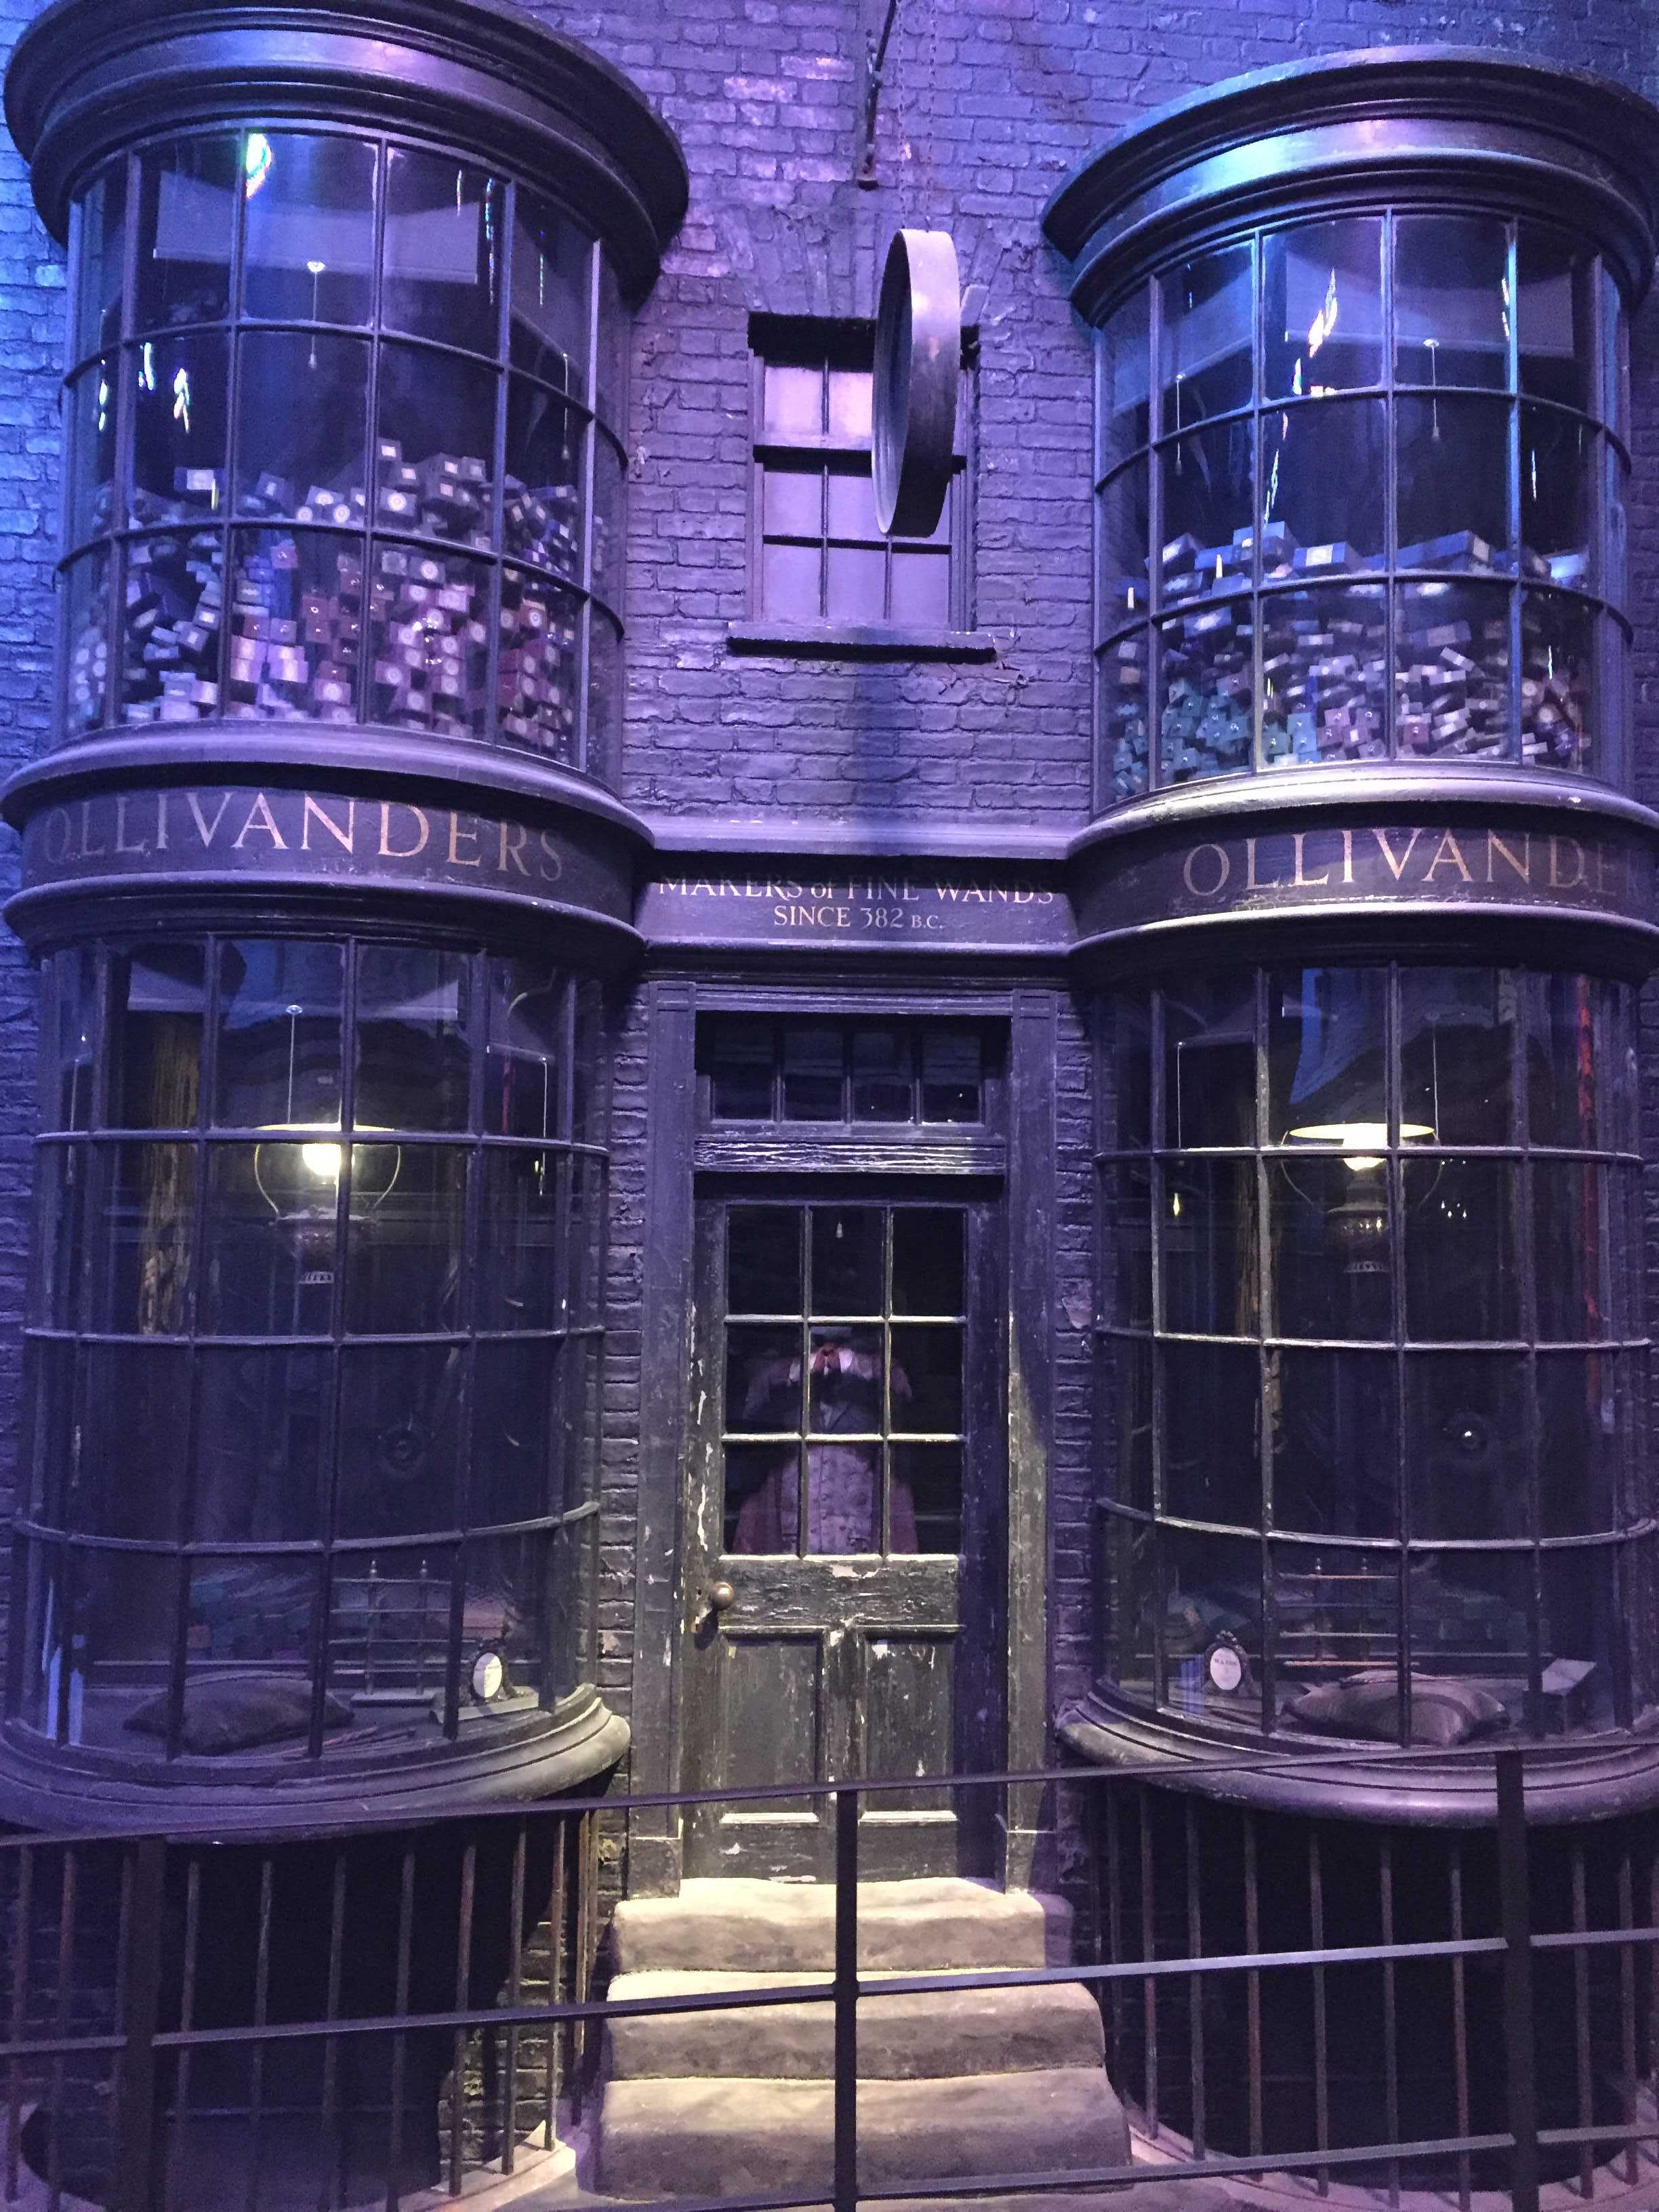 La boutique d'Olivander dans le chemin de Traverse Harry Potter